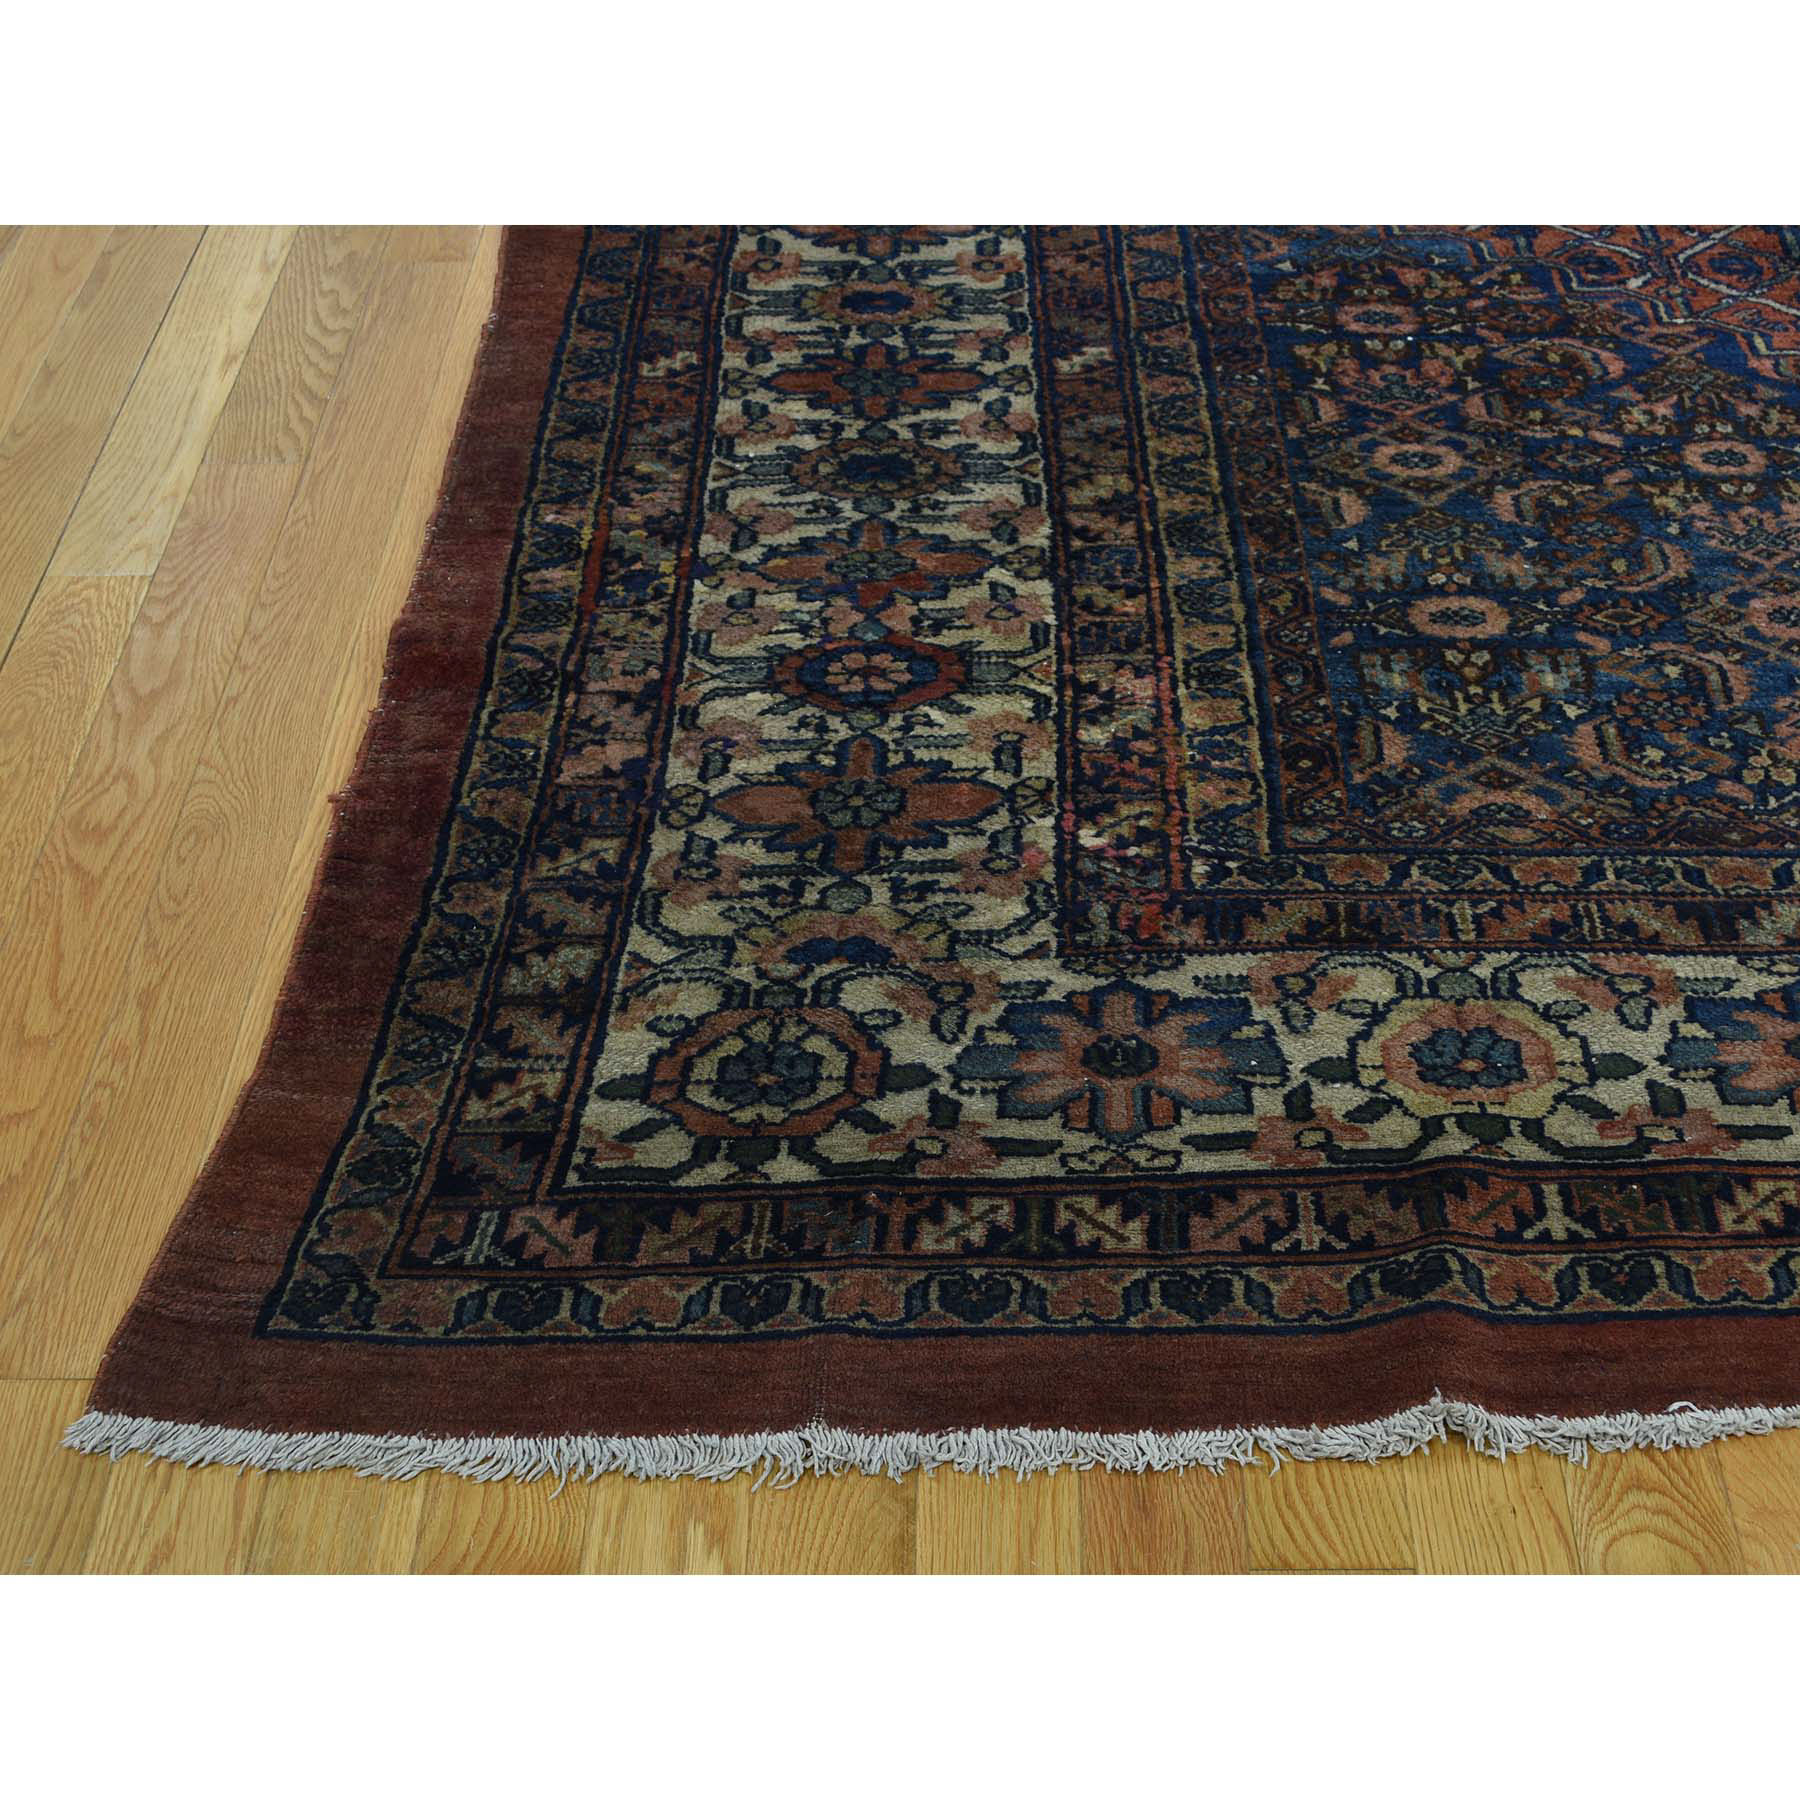 11-10 x23-4  Antique Persian Bibikabad Hand-Knotted Gallery Size Rug